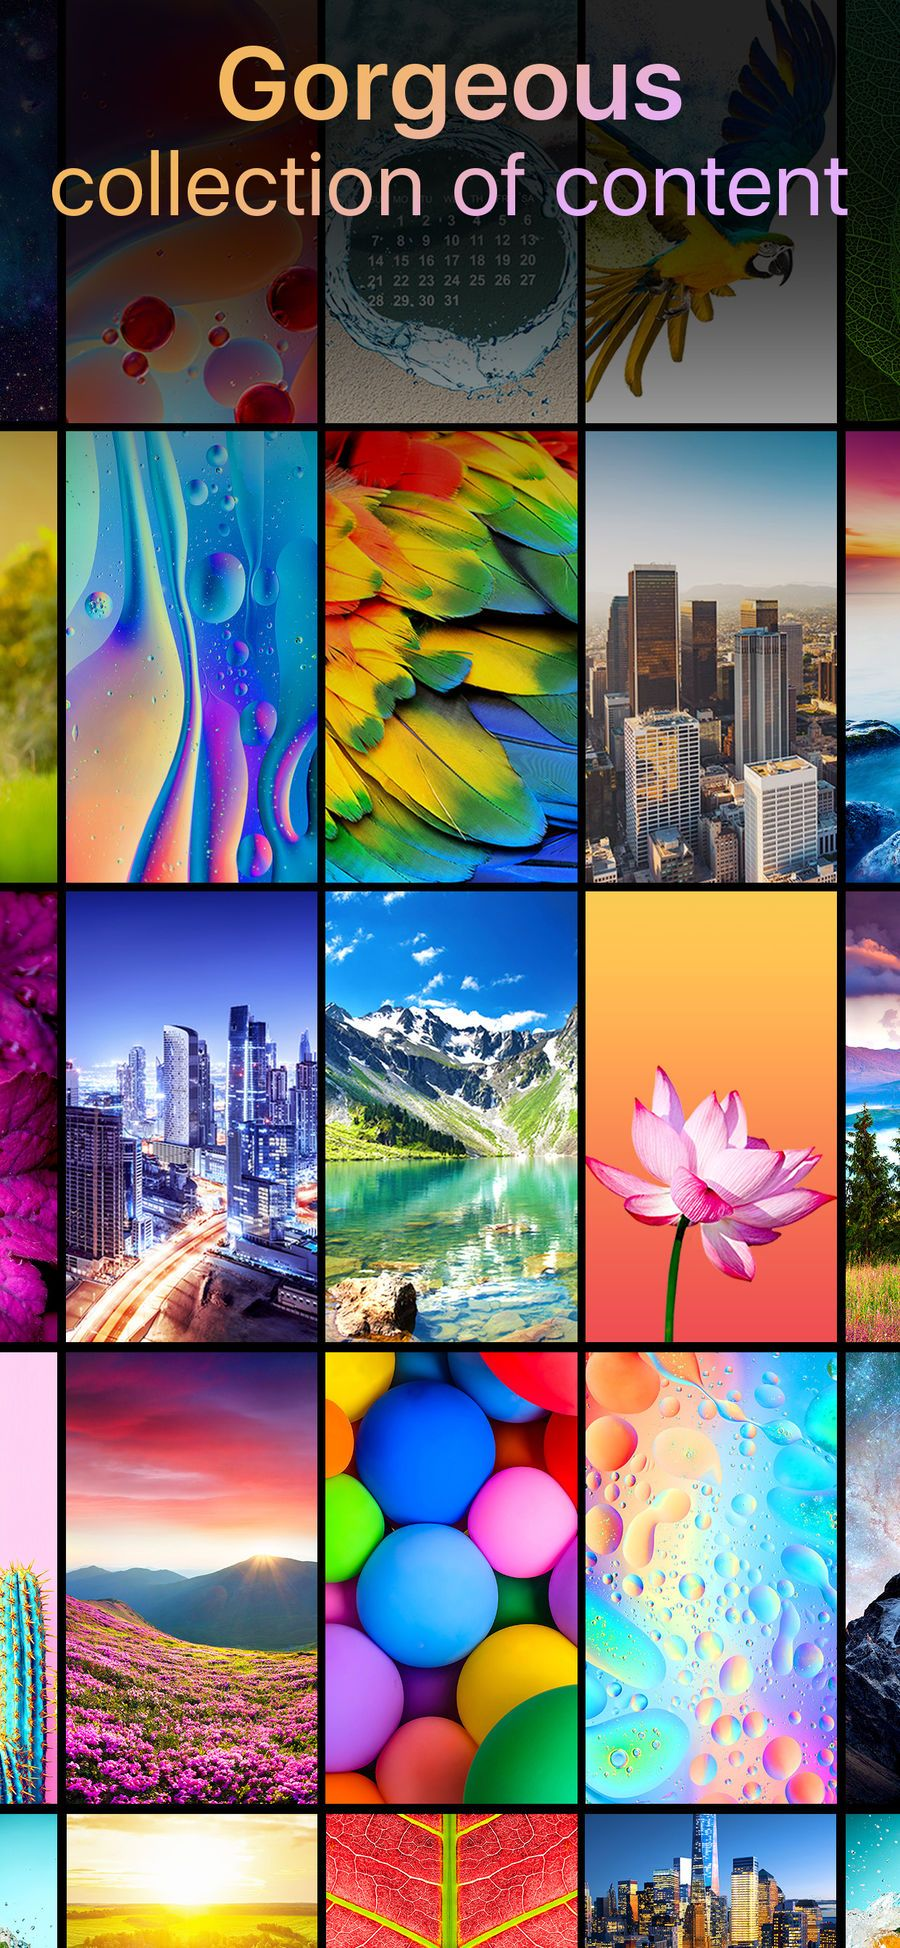 ‎Live Wallpapers Now on the App Store Live wallpapers